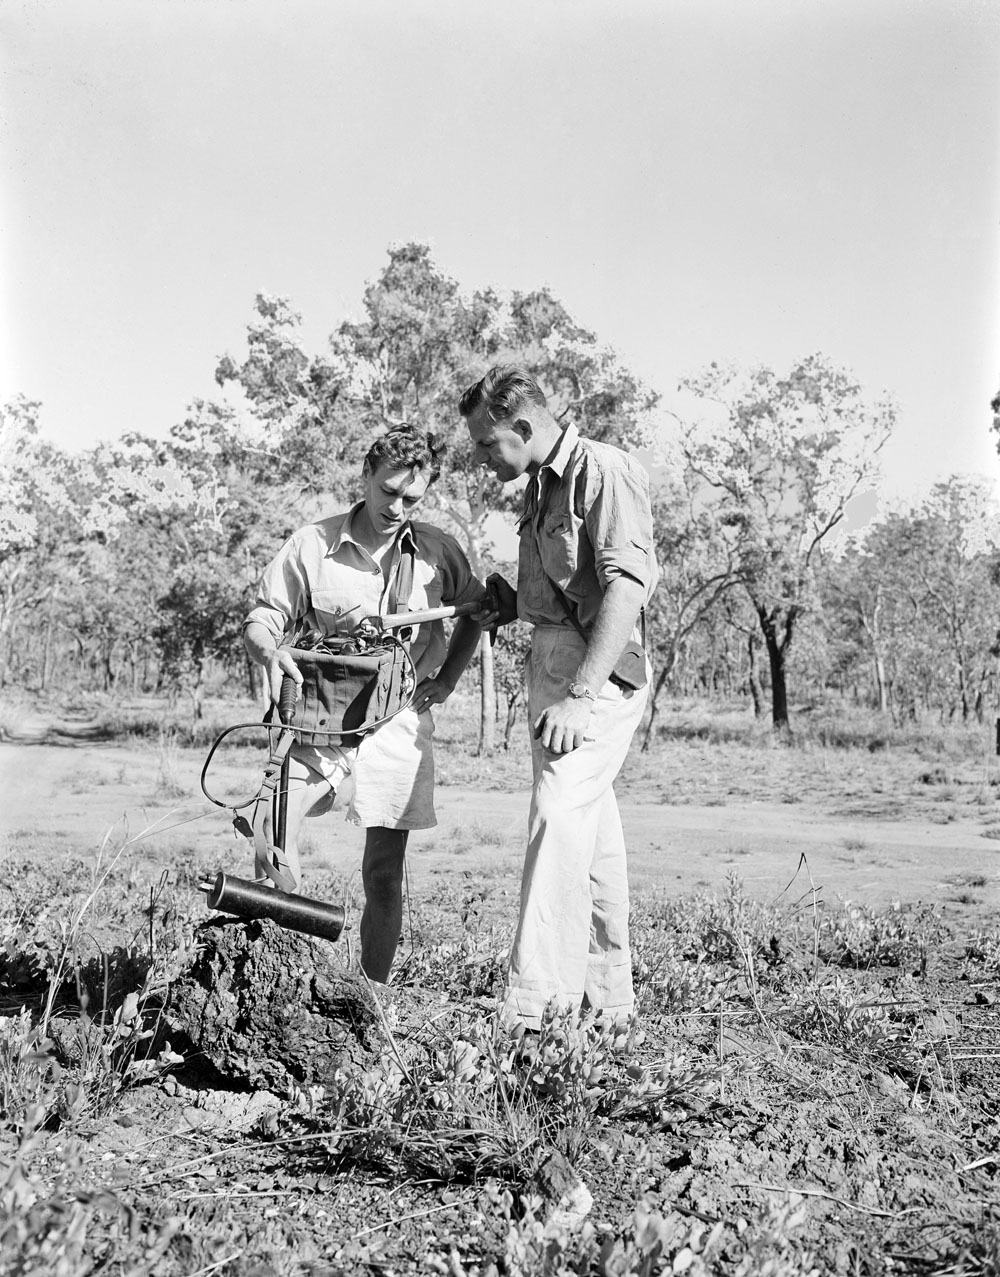 Geophysicist Don Dyson (left) and Geologist Hector Ward use a Geiger counter to examine a mineral outcrop in a belt of uranium bear (1955) National Archives of Australia: A1200, L19458.